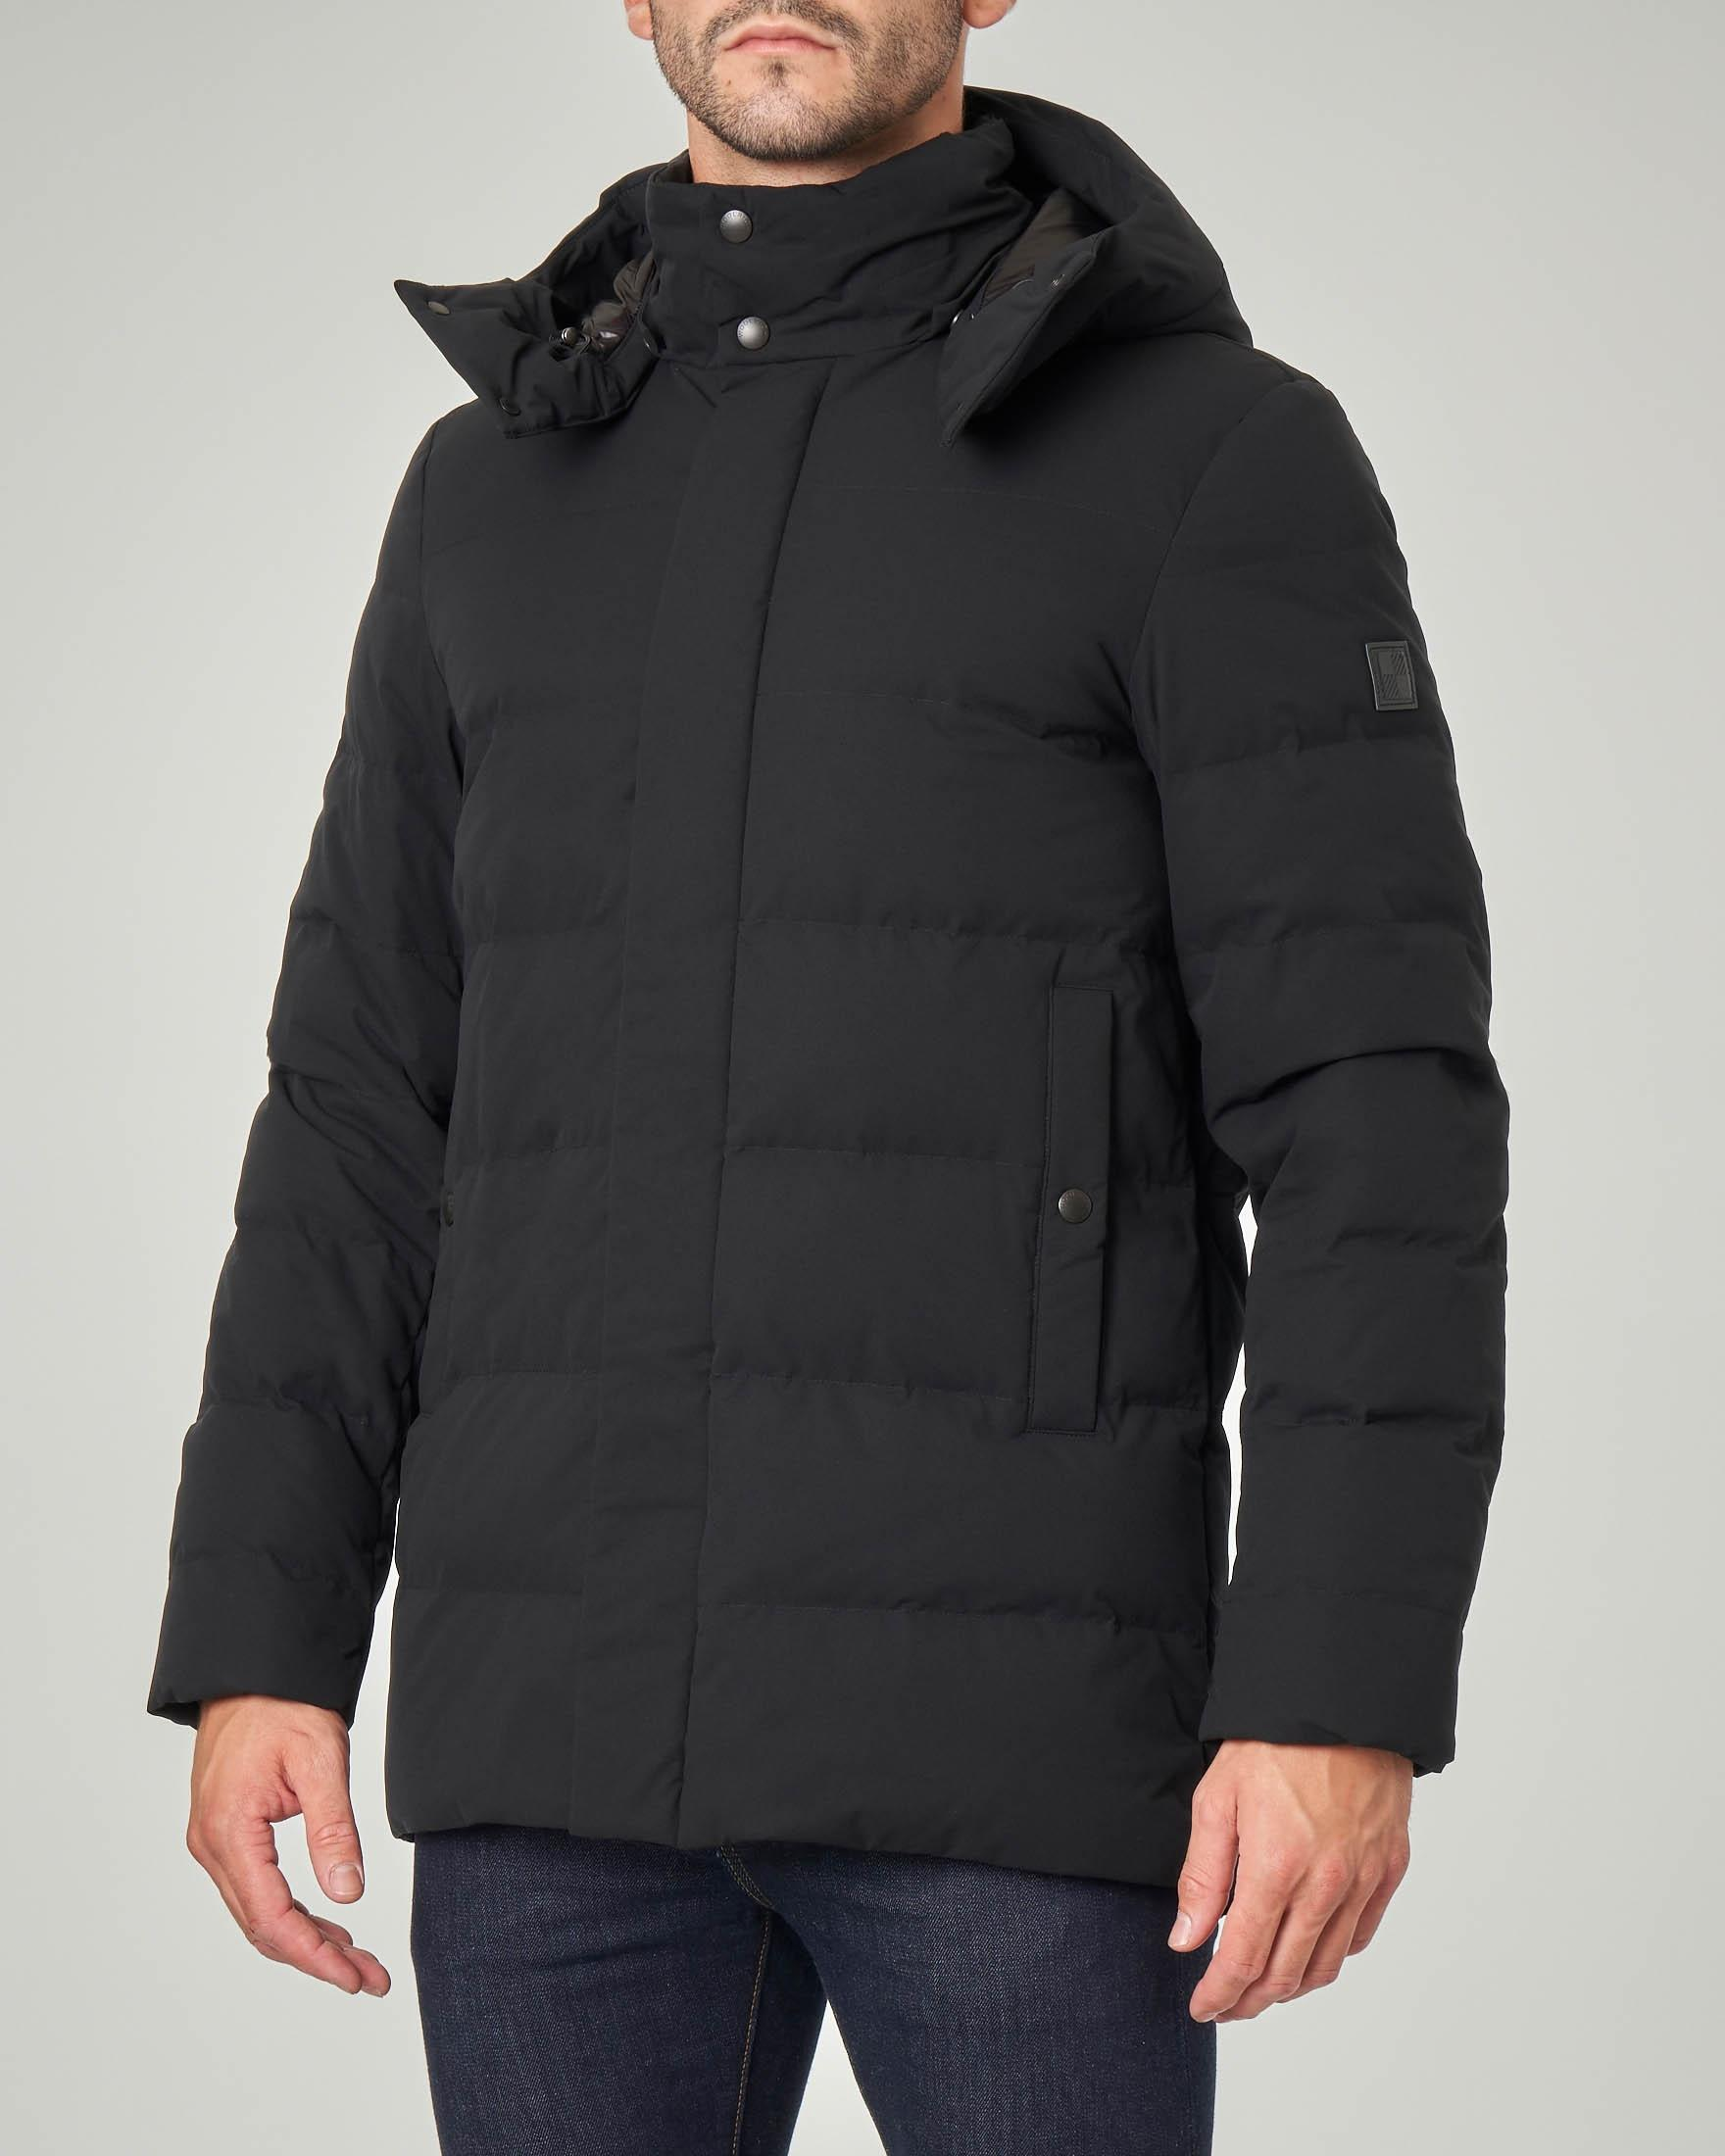 Sierra Long Jacket nera